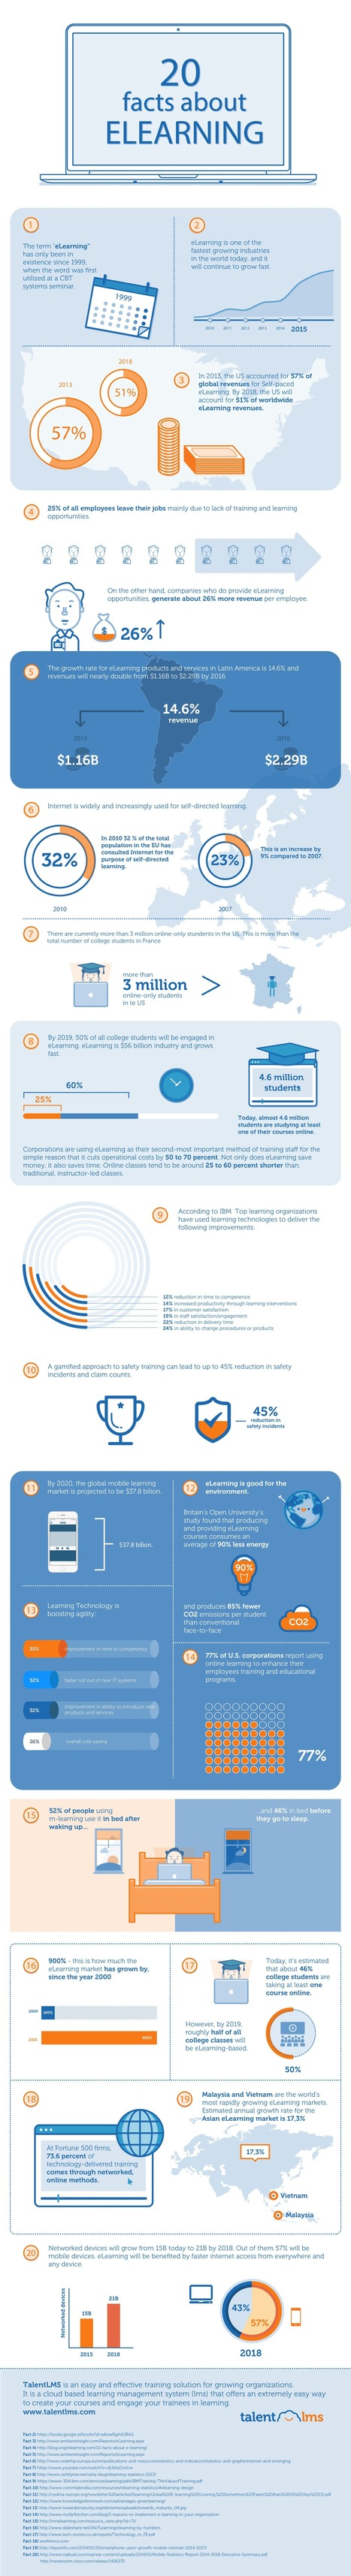 20 Facts about eLearning Infographic - e-Learning Infographics | Elementary Technology Education | Scoop.it